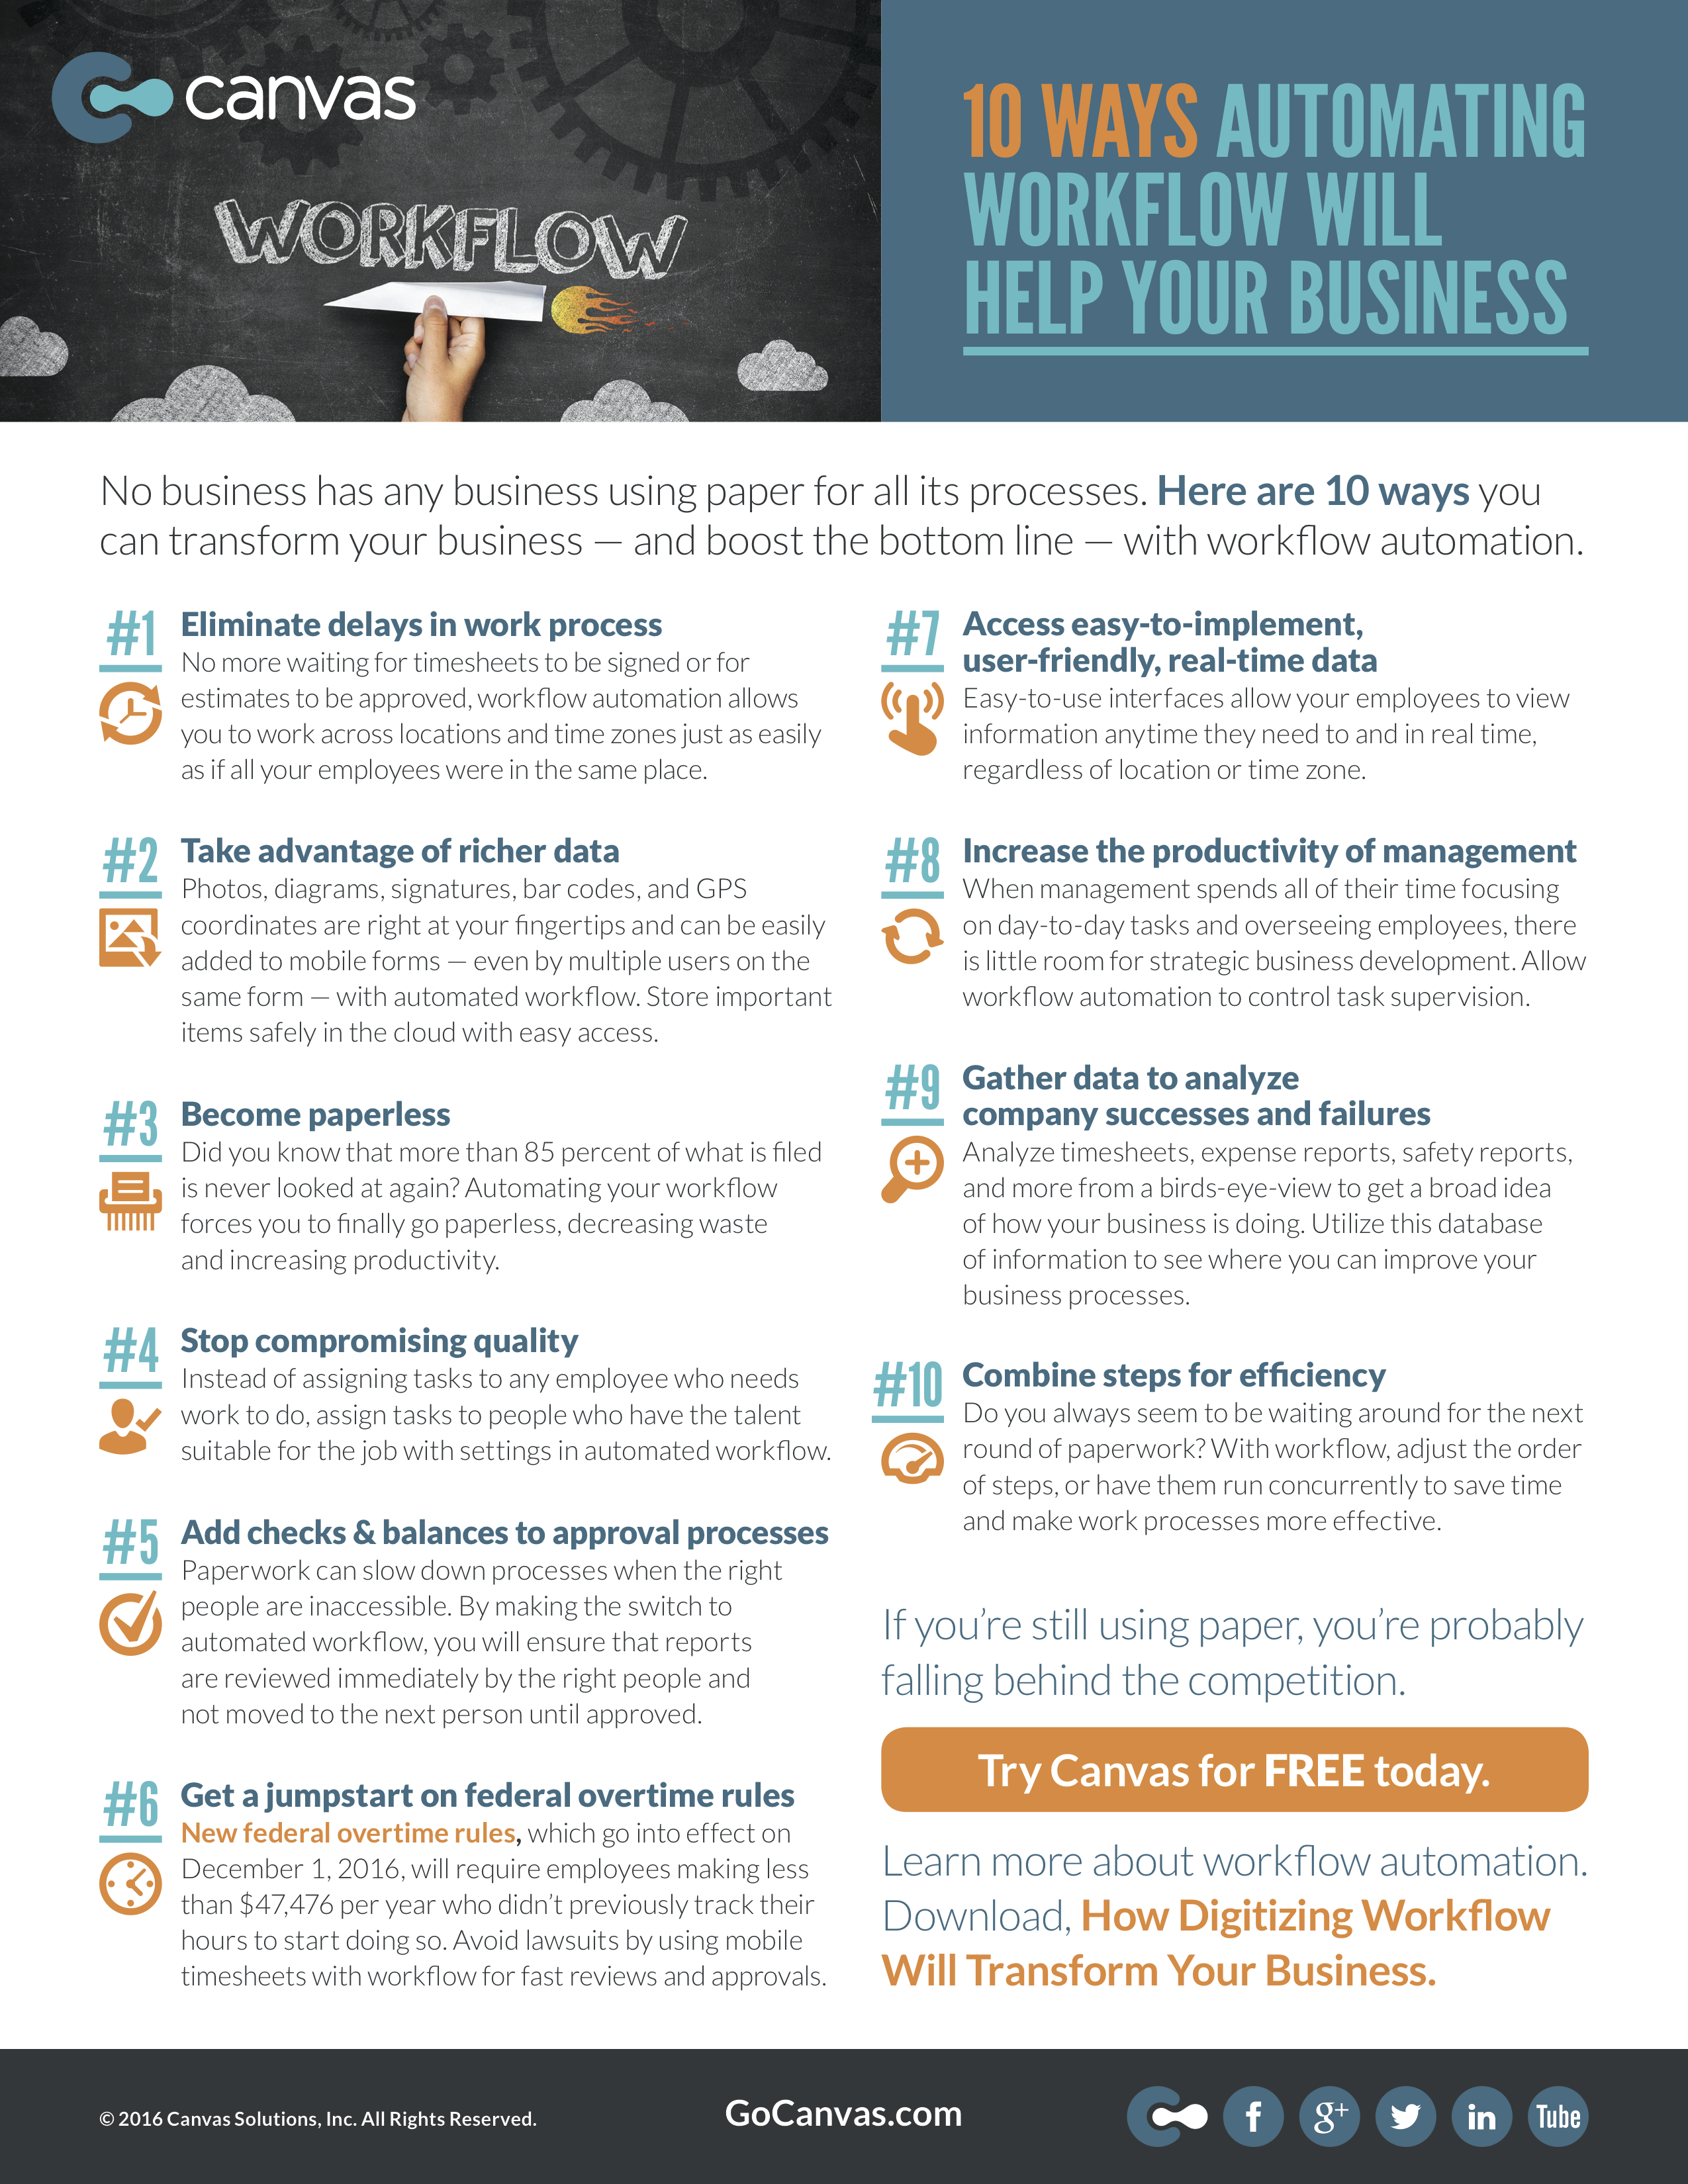 10 Ways Automating Workflow Will Help Your Business